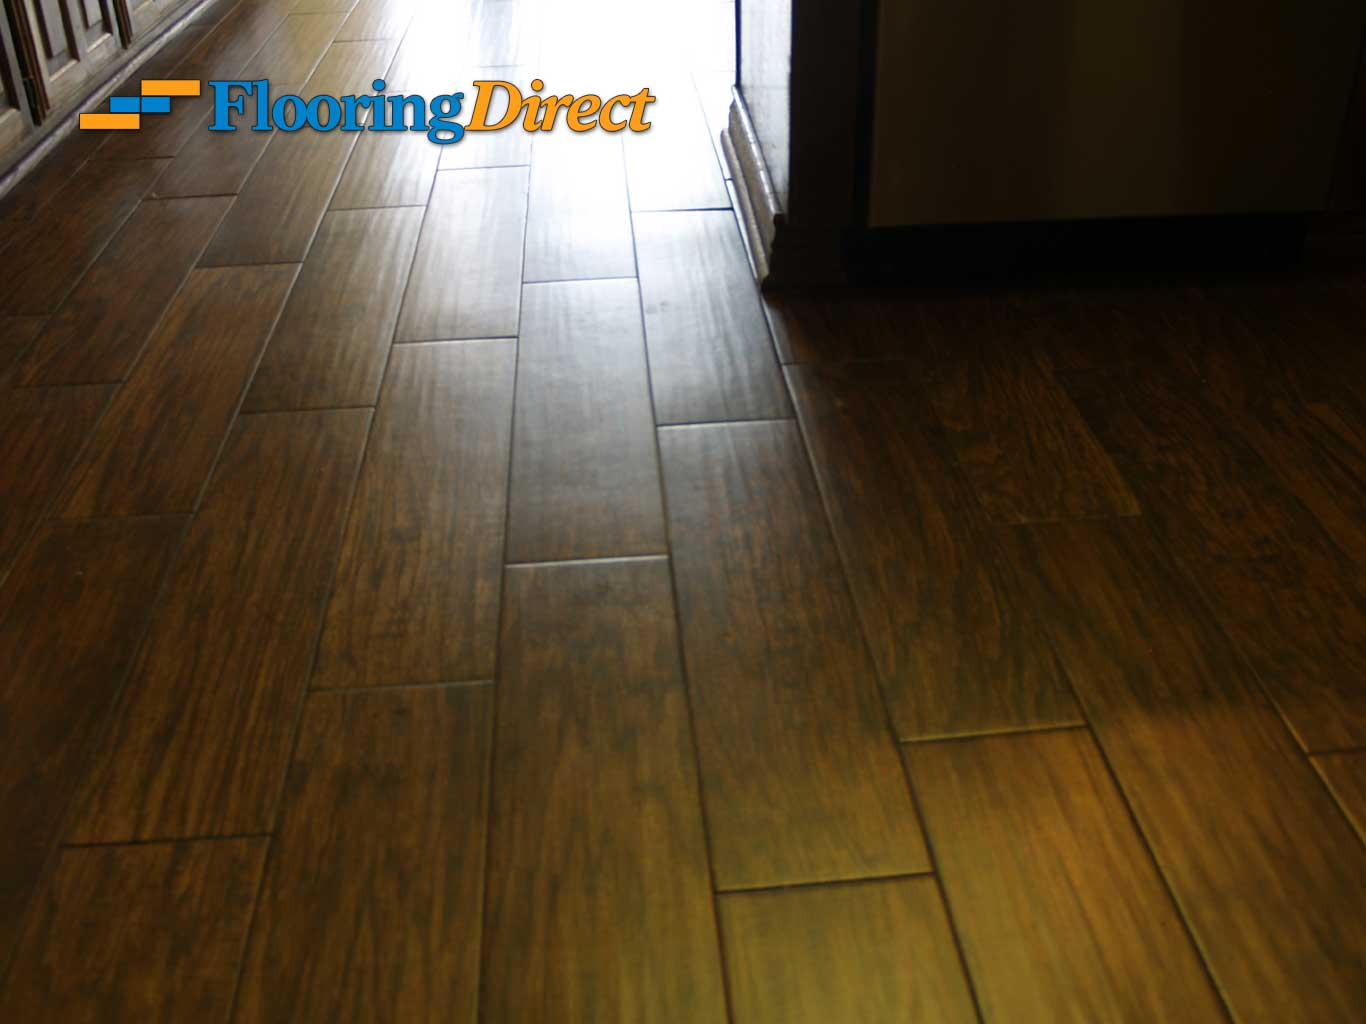 Wood-look Tile Flooring by Flooring Direct serving all of DFW including Richardson